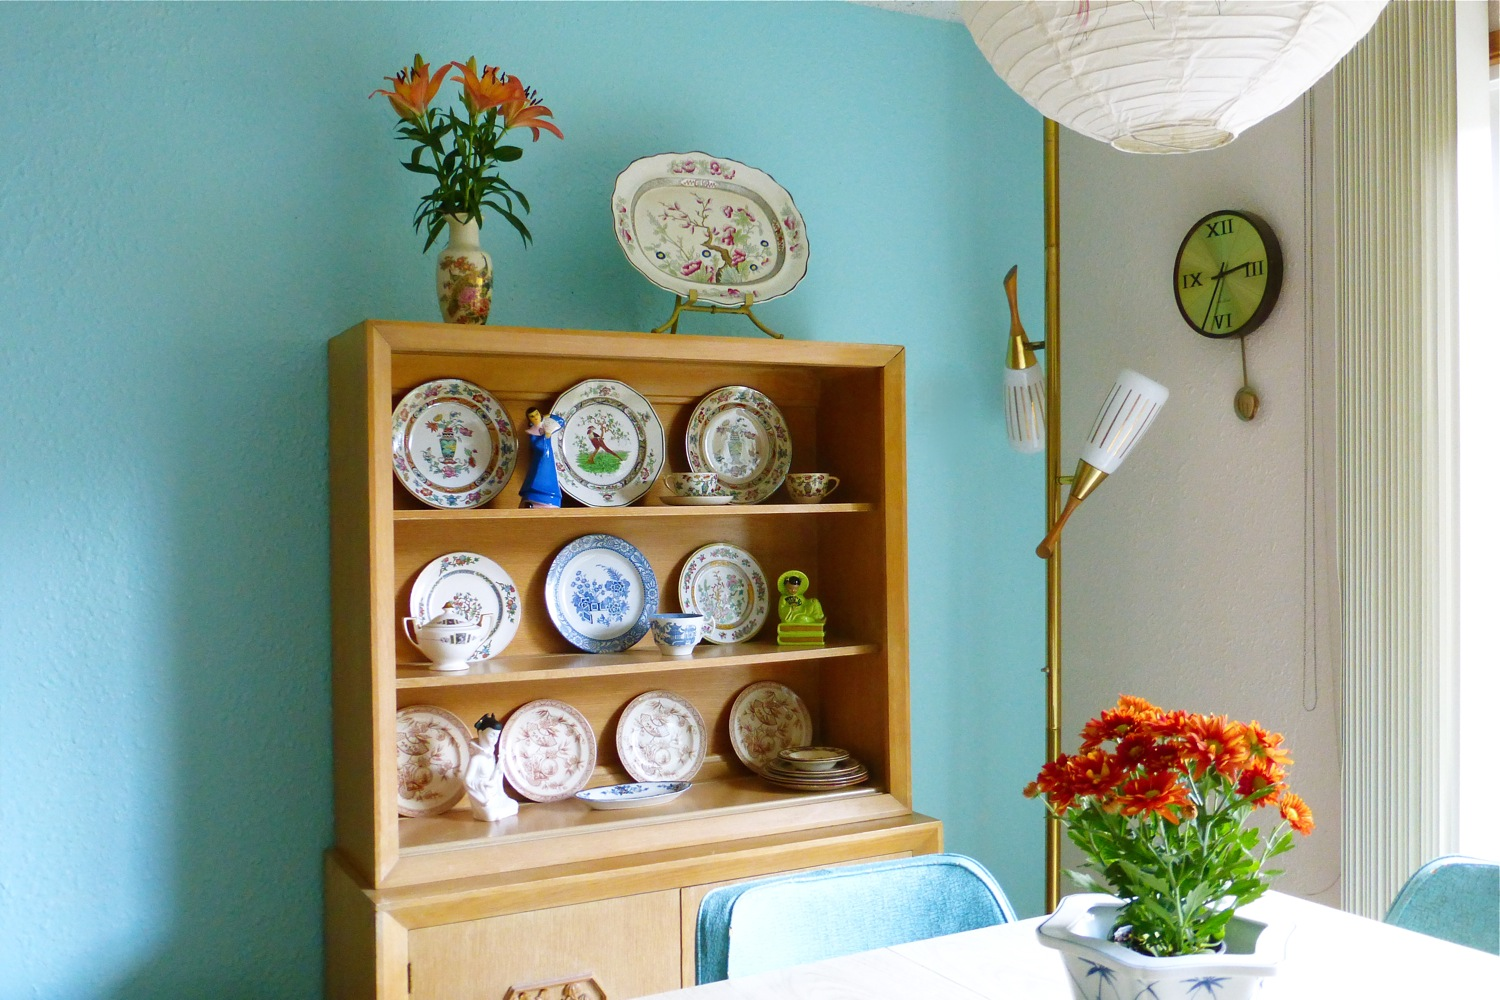 Styling a James Mont Midcentury Chinoiserie Limed Oak Hutch with Antique Chinoiserie Revival Dish ware, Midcentury styling, antique chinoiserie dish ware, chinoiserie styling, 1880 Brownfield & Son, 1900 Royal Doulton Pekin, 1917 Wood & Sons Woods Ware Wincanton plate, 1917 Wood & Sons Woods Ware Canton teacup, 1917 Wood & Sons Woods Ware Mayfair platter, Klein ©49 asian Chinoiserie figurine, 1913 Johnson Bros Pareekware plate, 1920 Cleveland China sugar bowl, 1905 Foley Art China Peacock Pottery Indian Tree plate, midcentury asian girl with fan bookend figurine, 1880 Alaska H & R plates, 1950 Ardalt Lenwile China asian girl playing musical instrument figurine, 1862 Burgess & Leigh Indian Tree platter